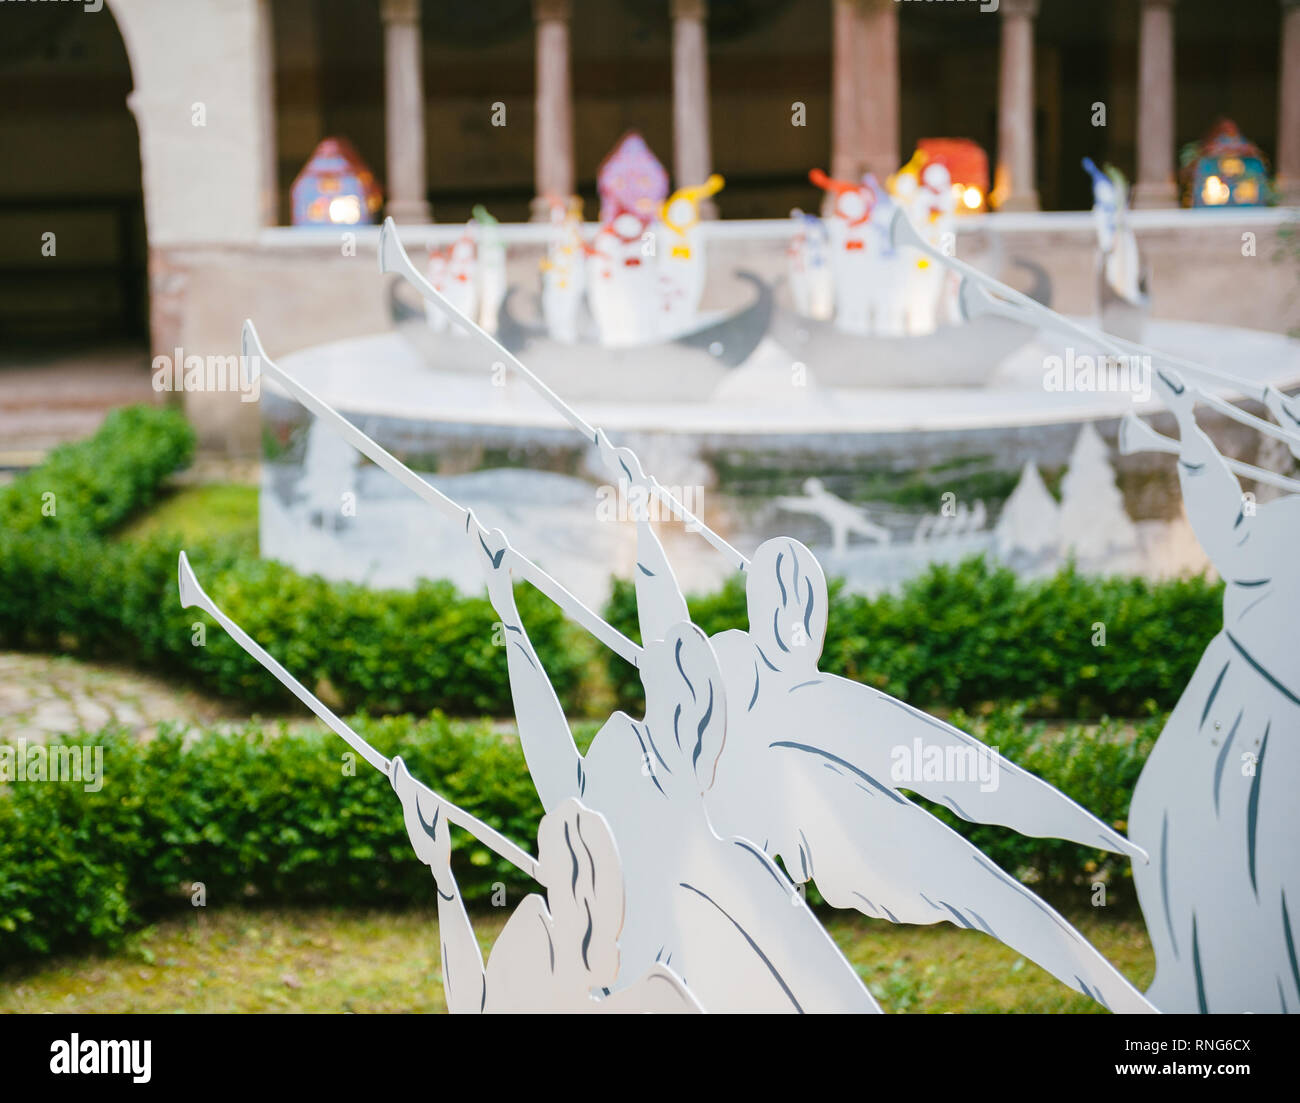 Trumpet angels Christmas silhouettes decorations in Strasbourg during winter holidays - Stock Image